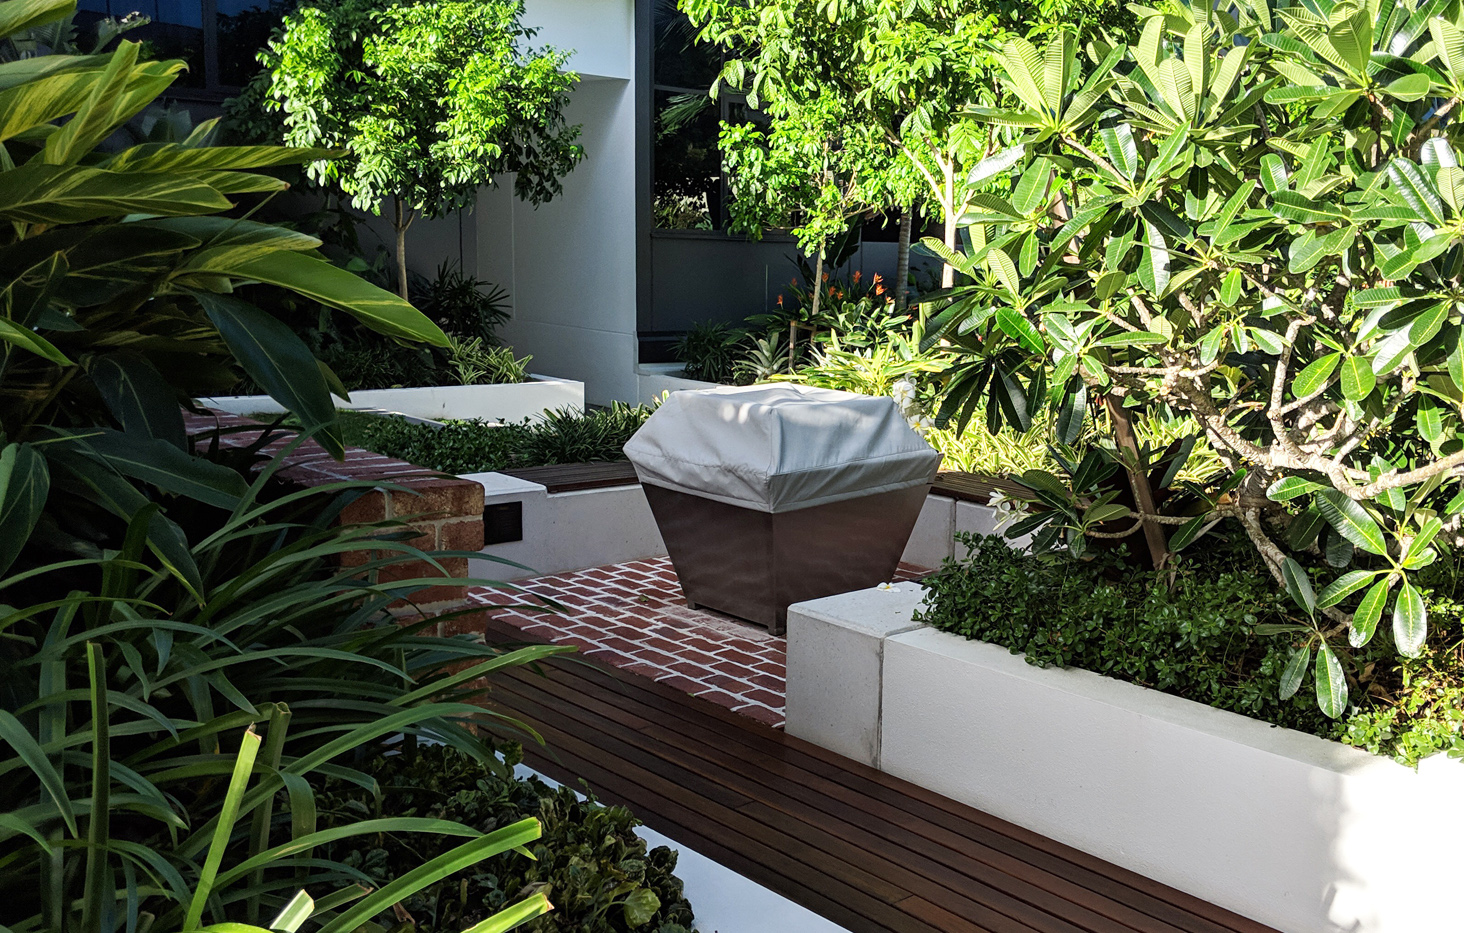 Handcrafted in Australia, the distinctive character of our stainless gas Fire Pit will bring warmth and style to your outdoor entertaining